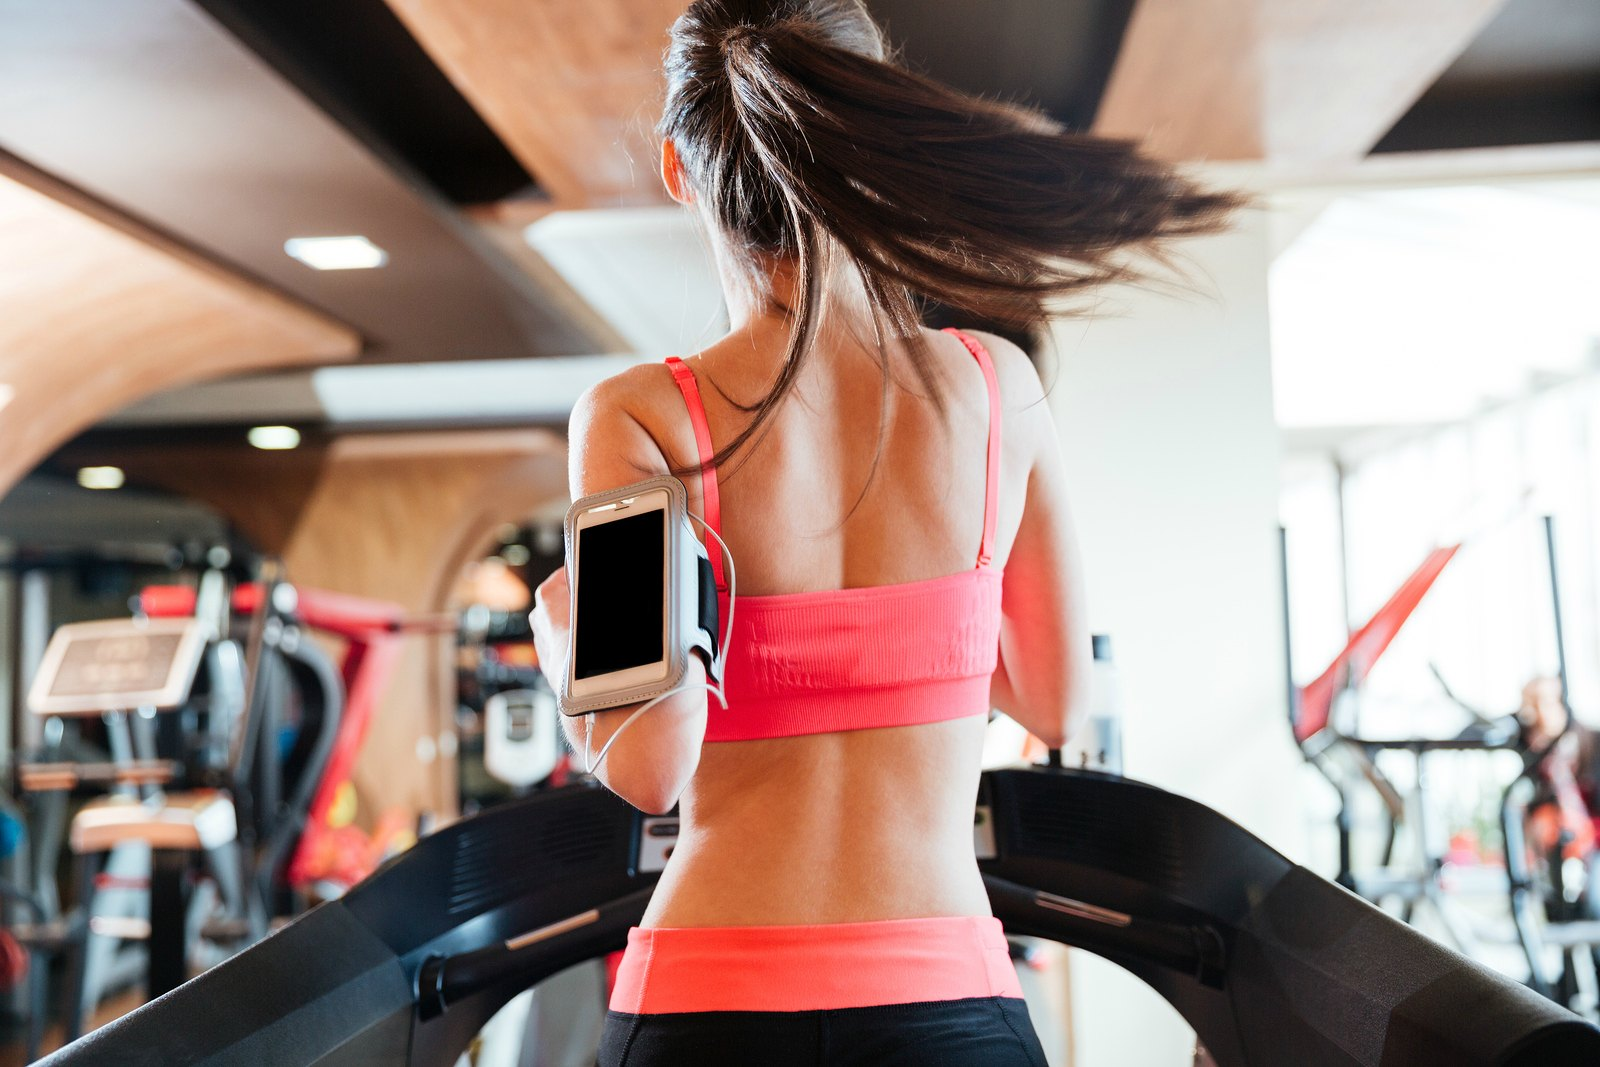 Hiit Workouts: The 10-Minute Treadmill Routine For Long-Term Results